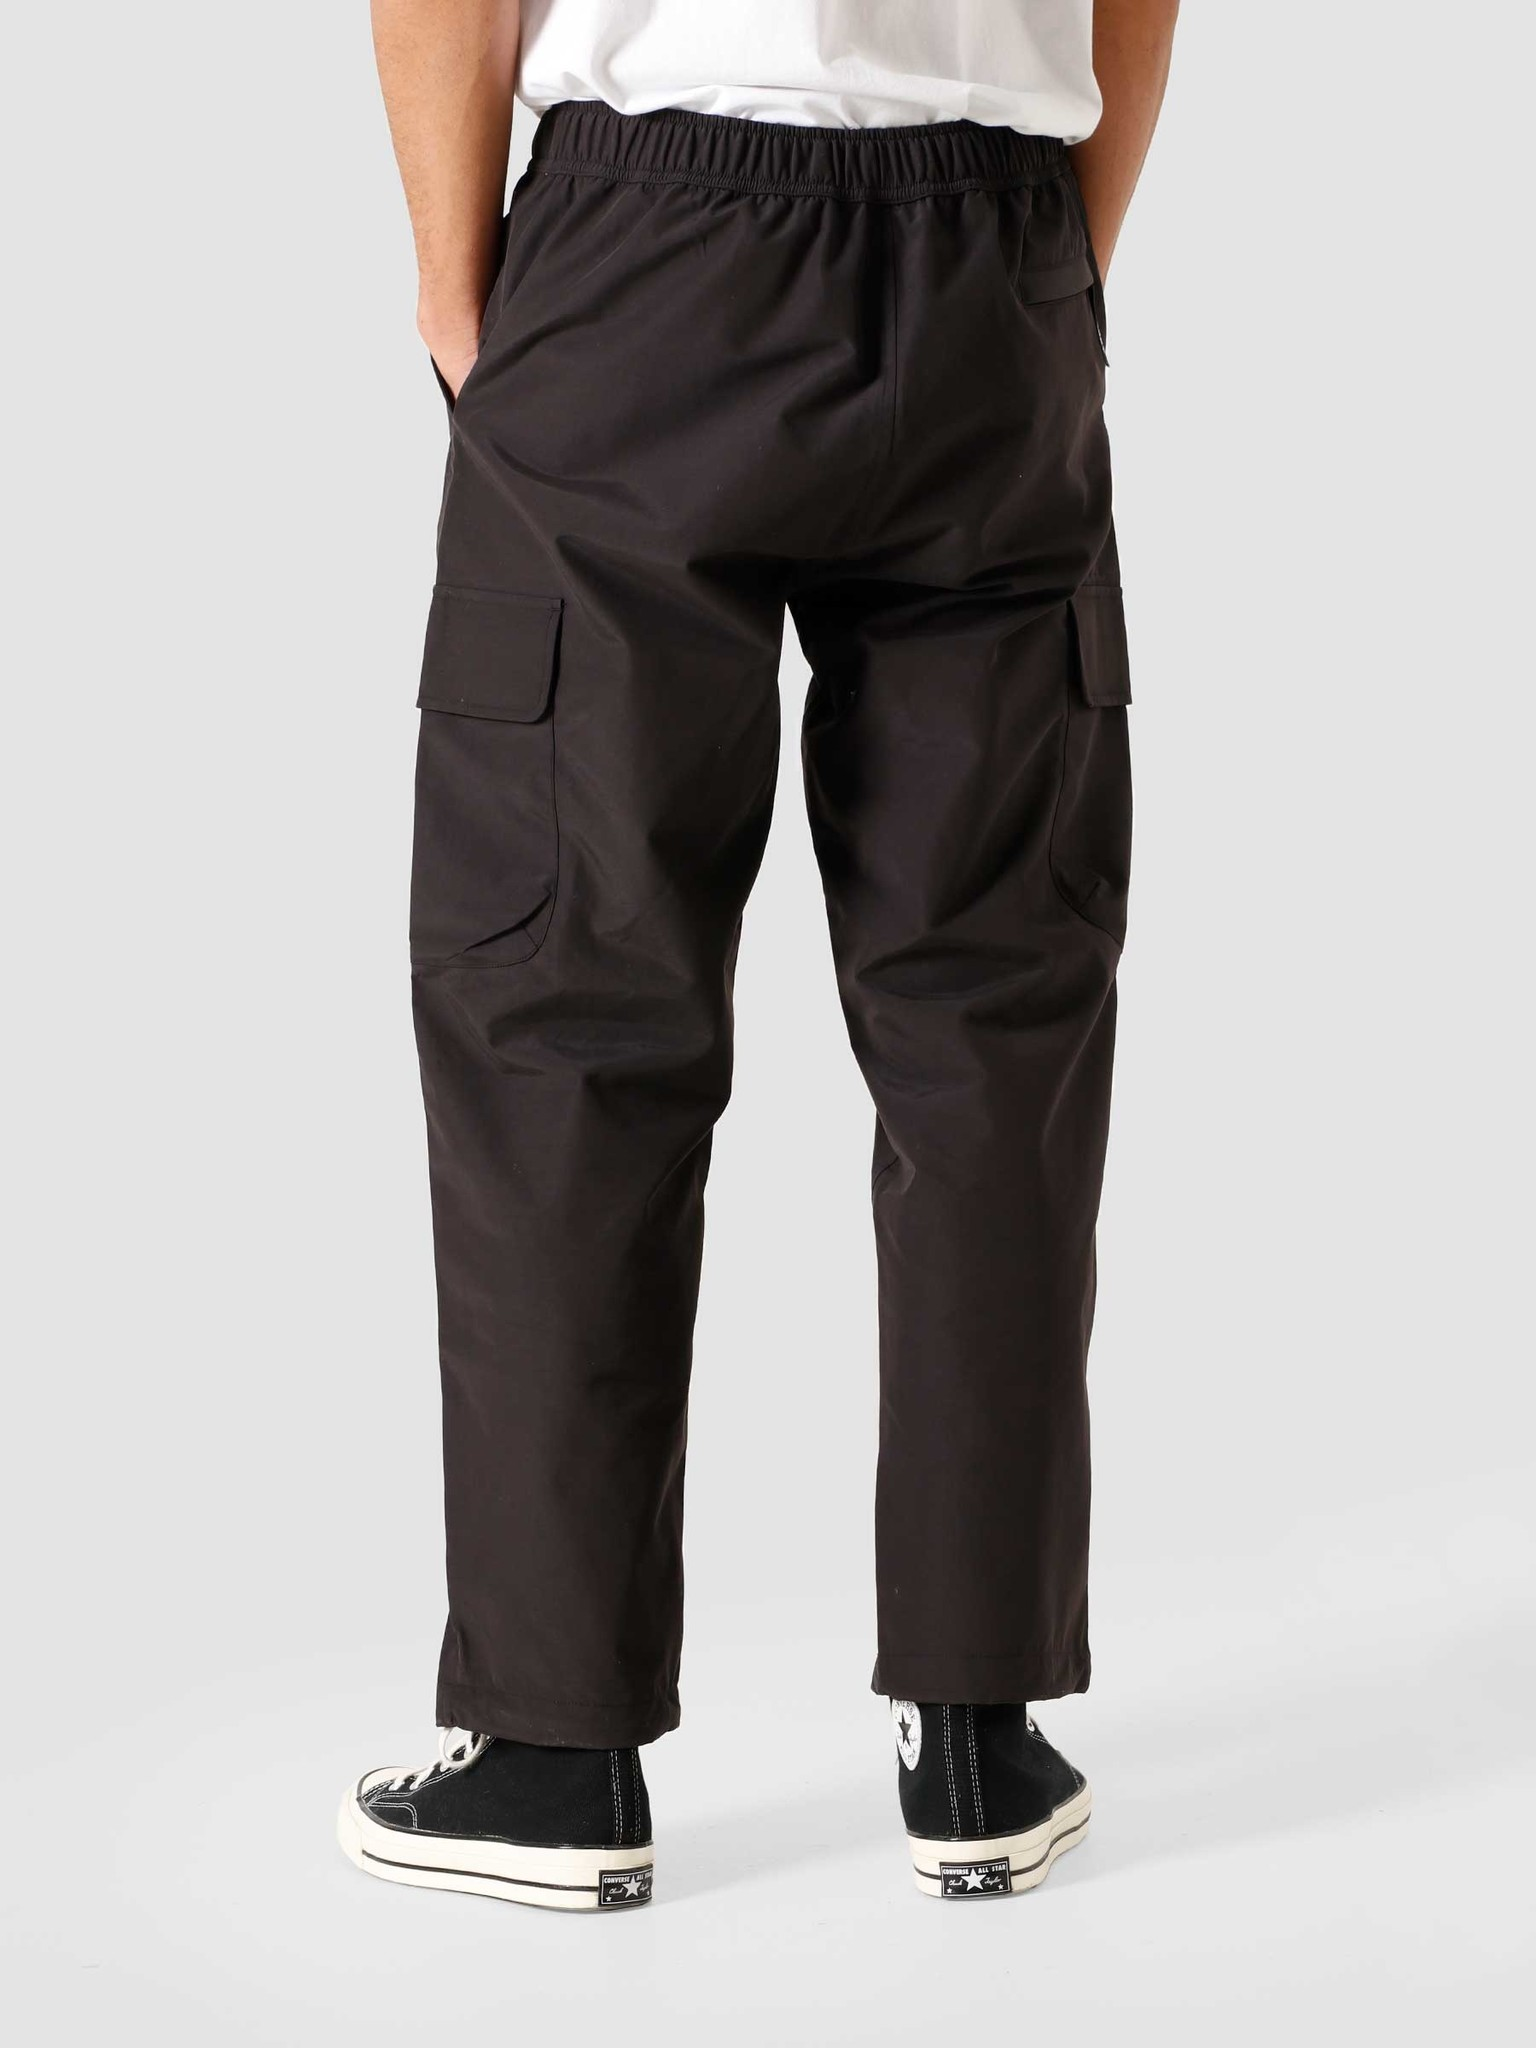 Stussy Stussy Solid Taped Seam Cargo Pant Black 116451-0001